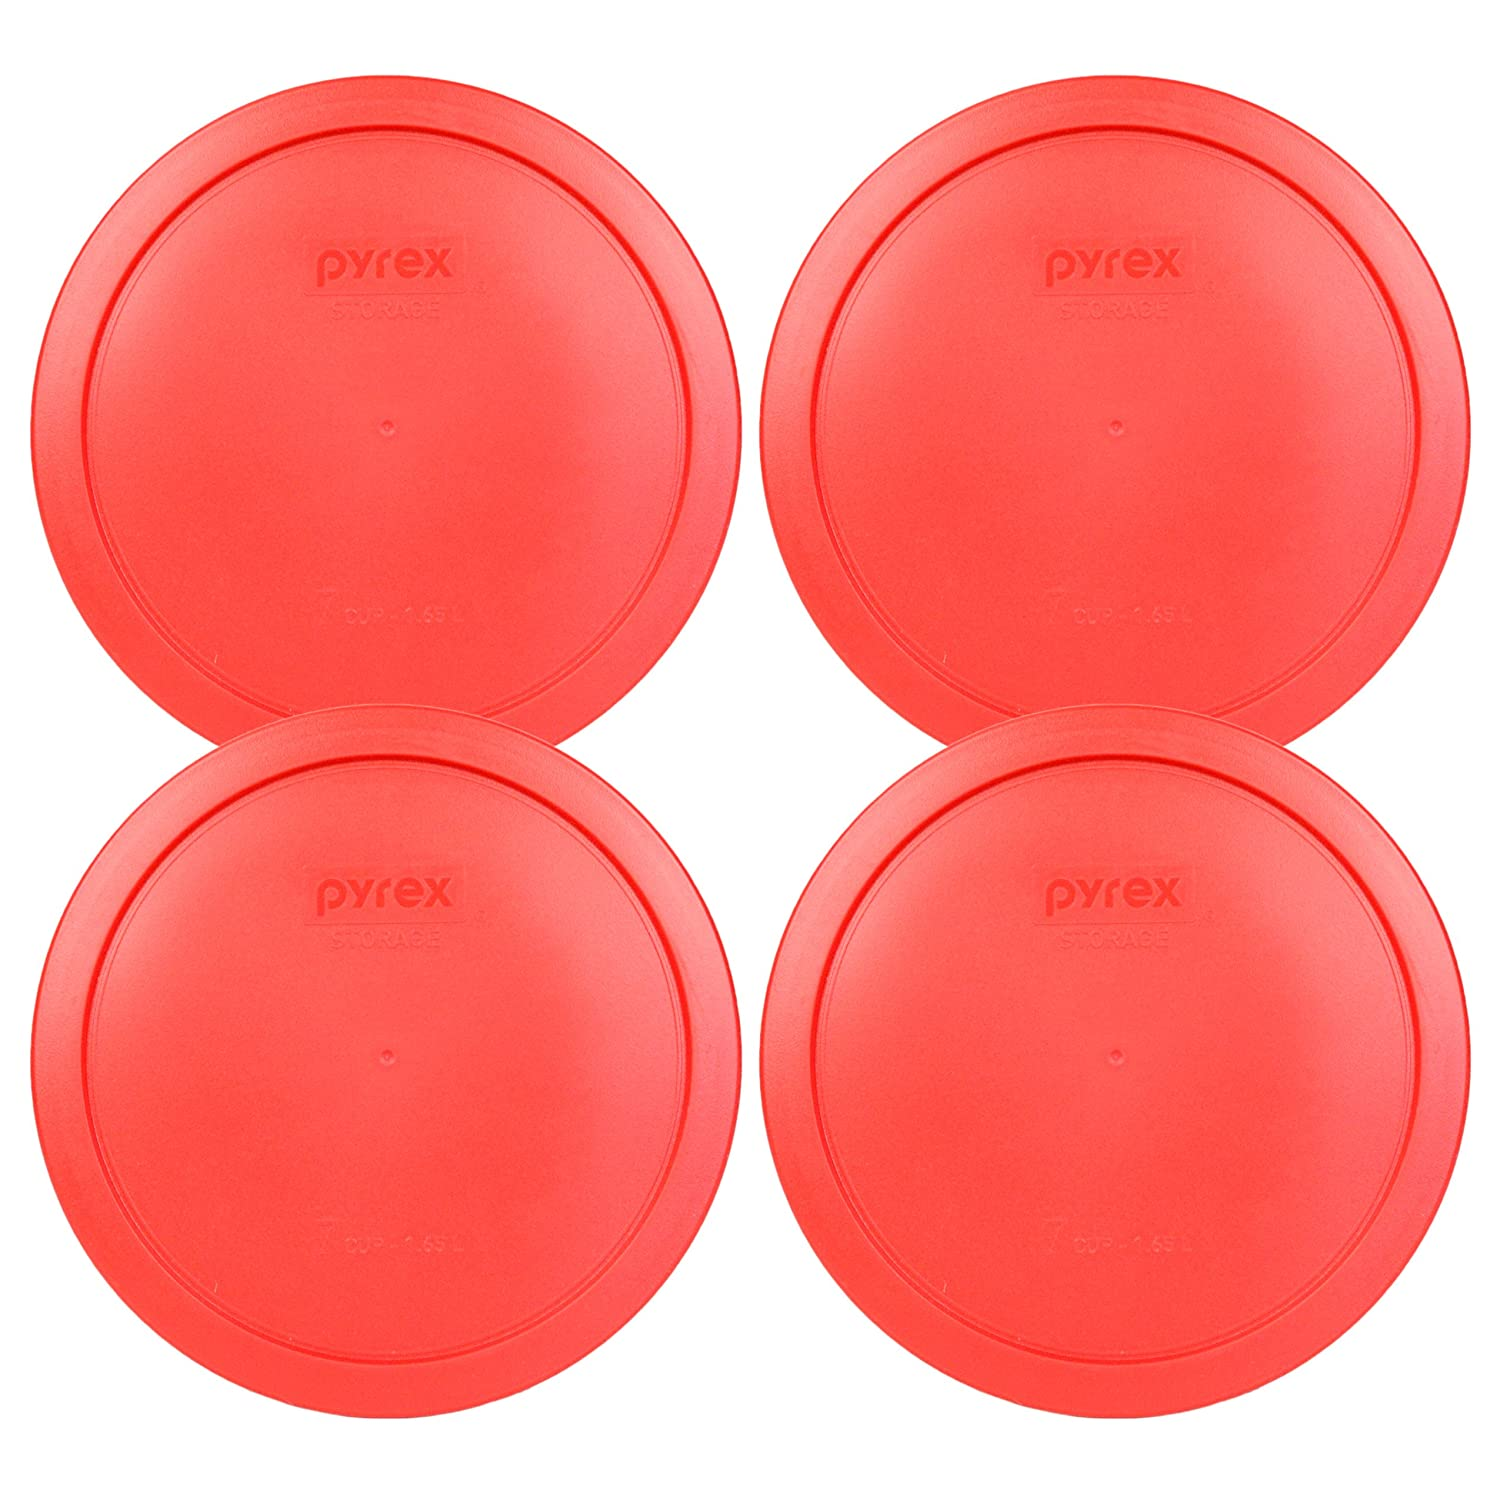 "Pyrex 7402-PC Red Round Storage Replacement Lid Cover fits 6 & 7 Cup 7"" Dia. Round (4-Pack)"